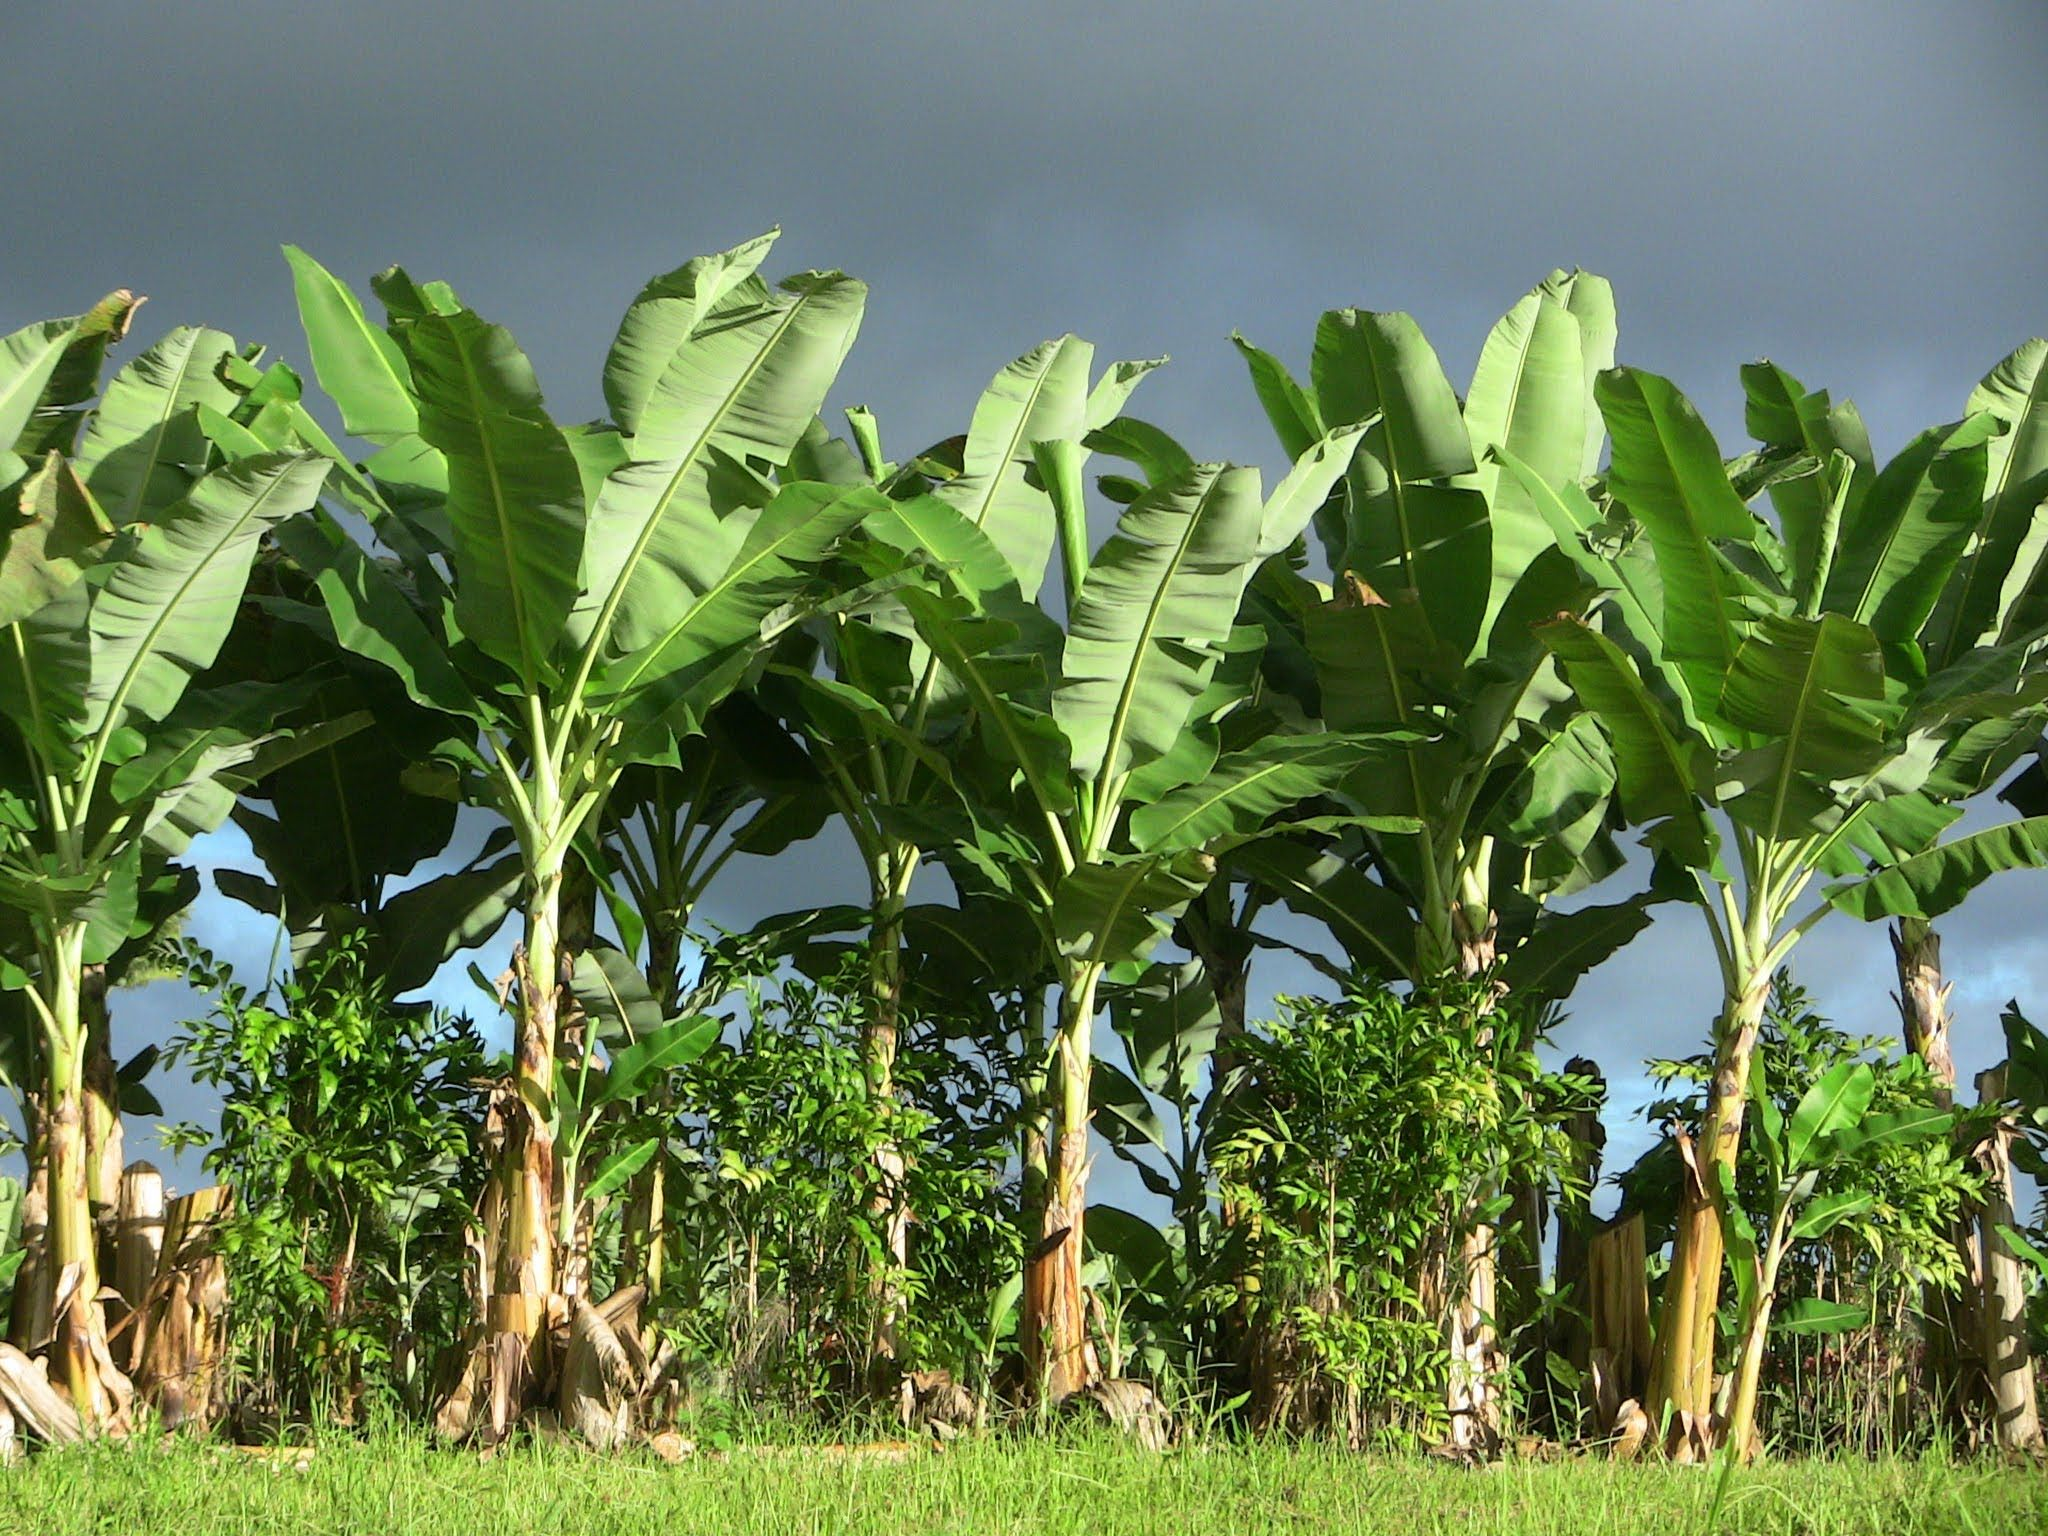 Banana Group Tree Banana Plants Banana Tree Grow Banana Tree